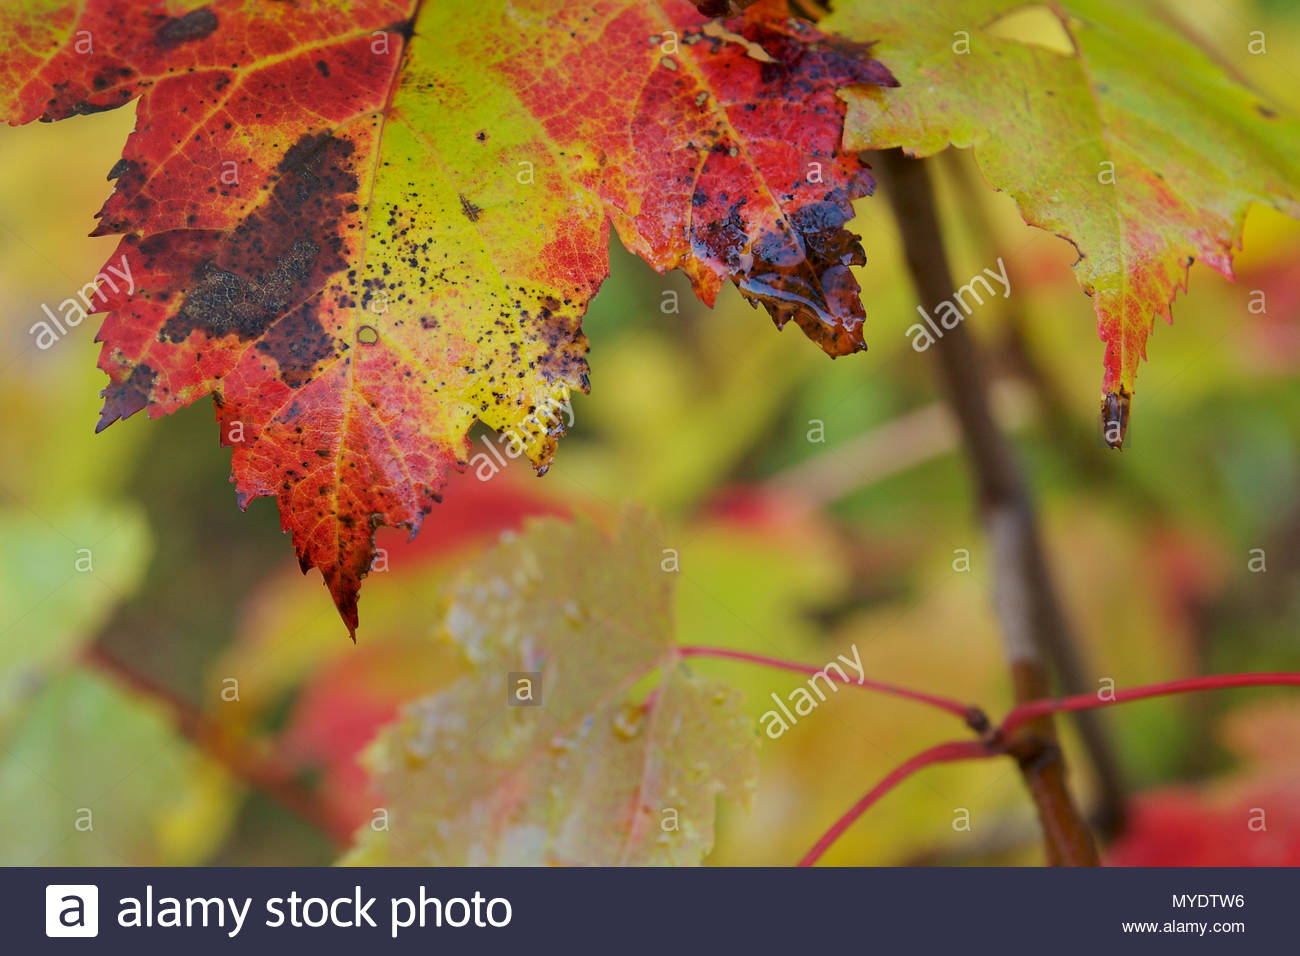 Maple leaves change colors in the fall. - Stock Image